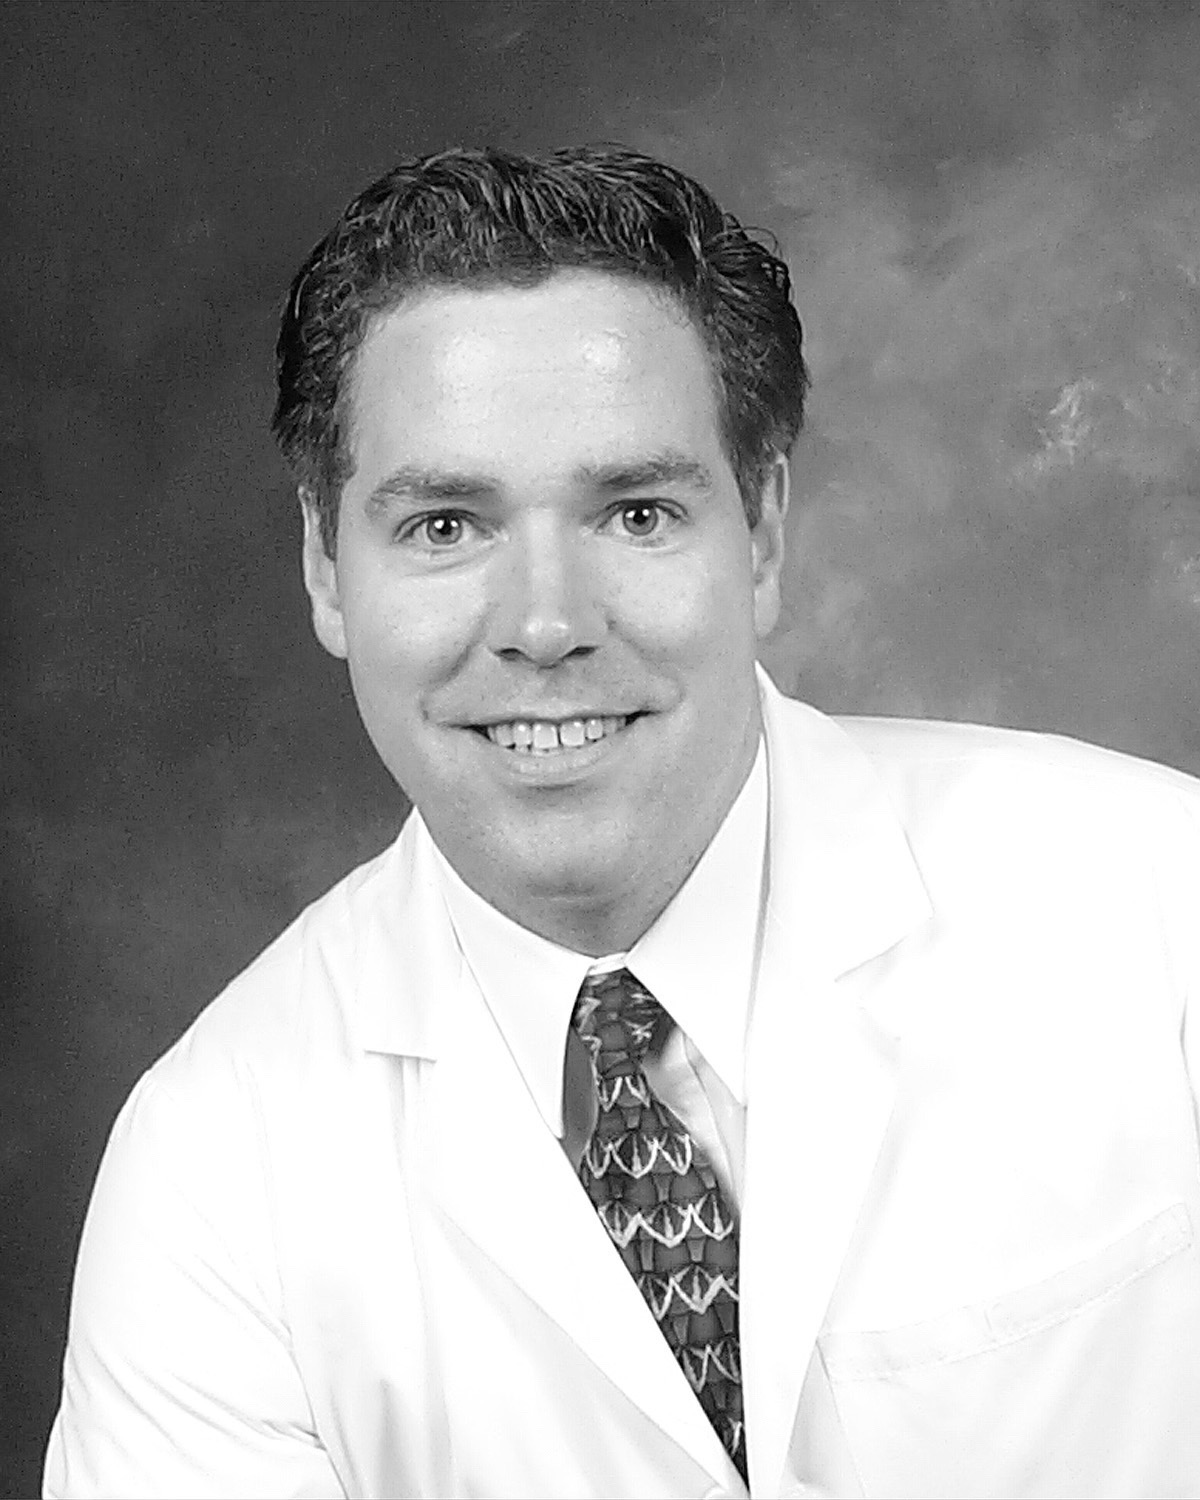 Dr. Larry Padgett, MD